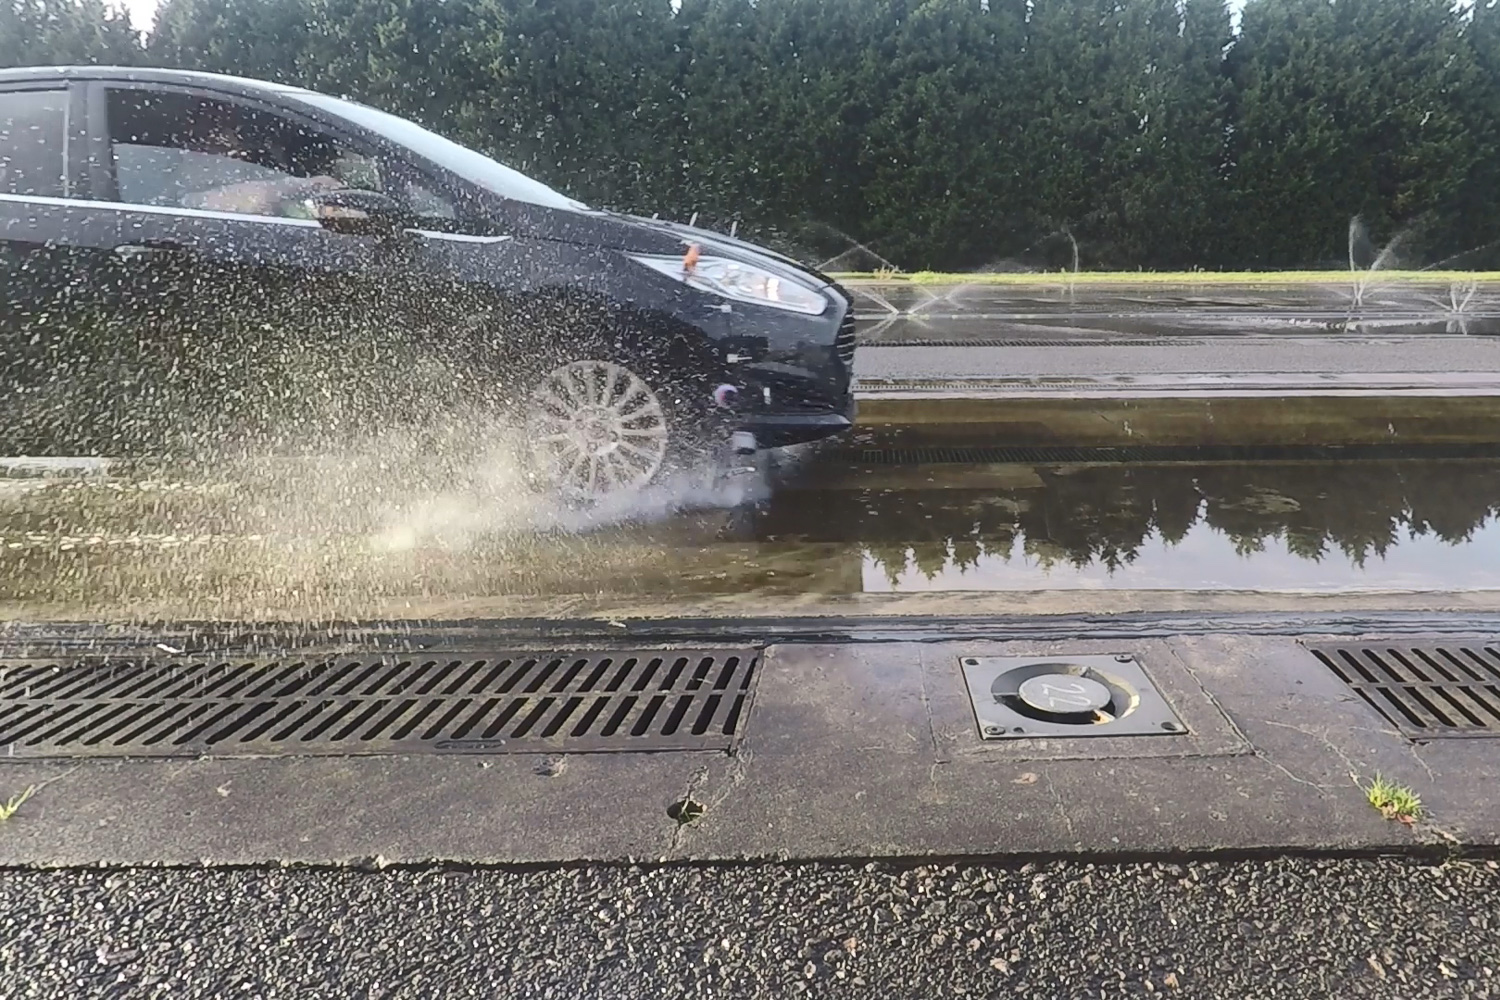 Car News   Run Dry Traction System could prevent aquaplaning   CompleteCar.ie